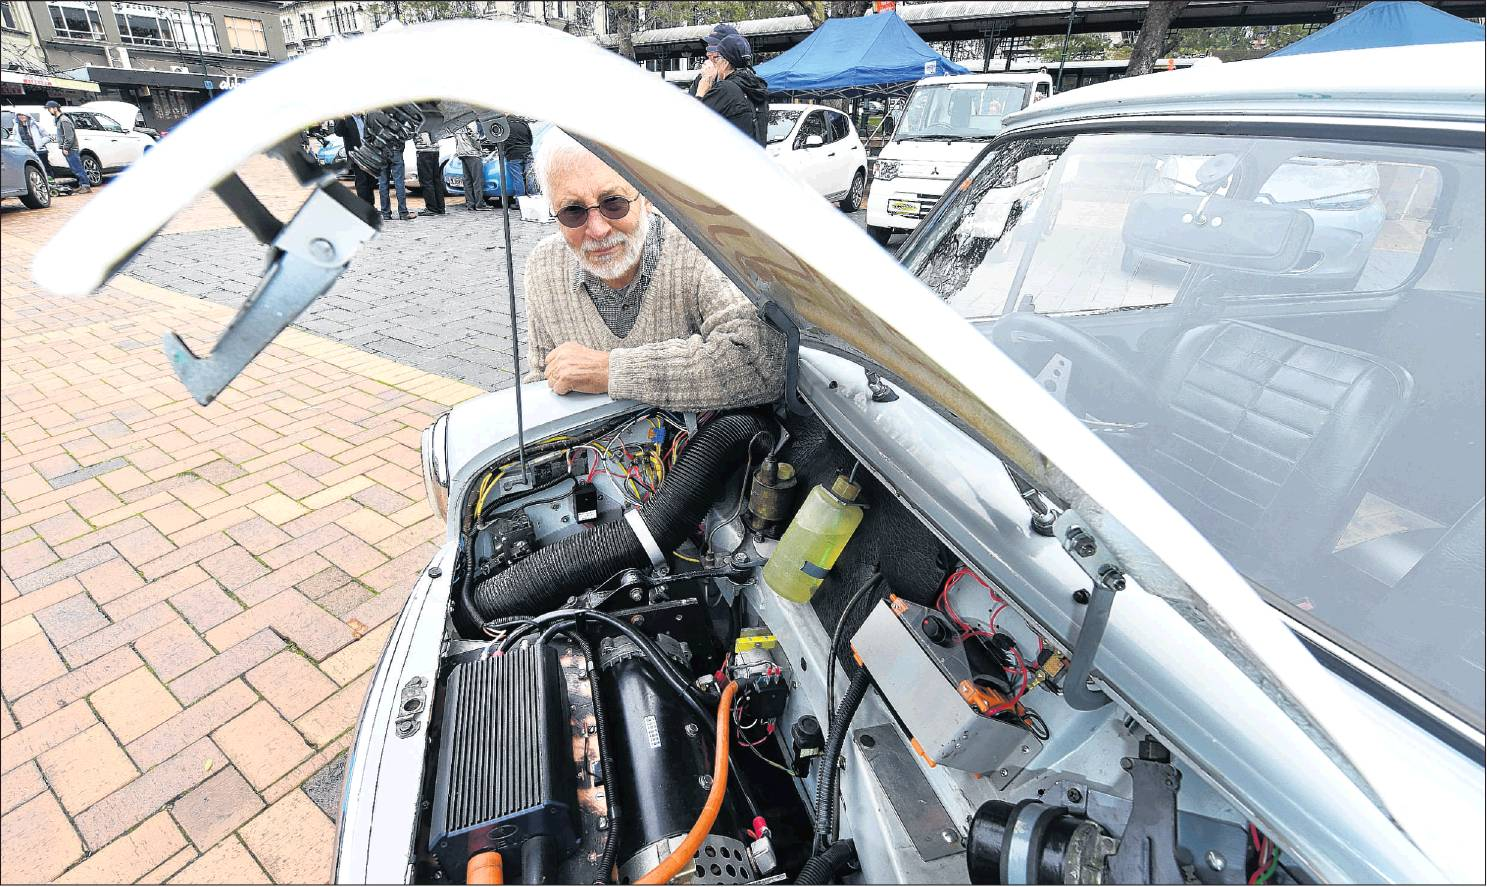 Michael Laba shows off his 1968 Morris Mini, which he converted to run on electricity in 1998, in...